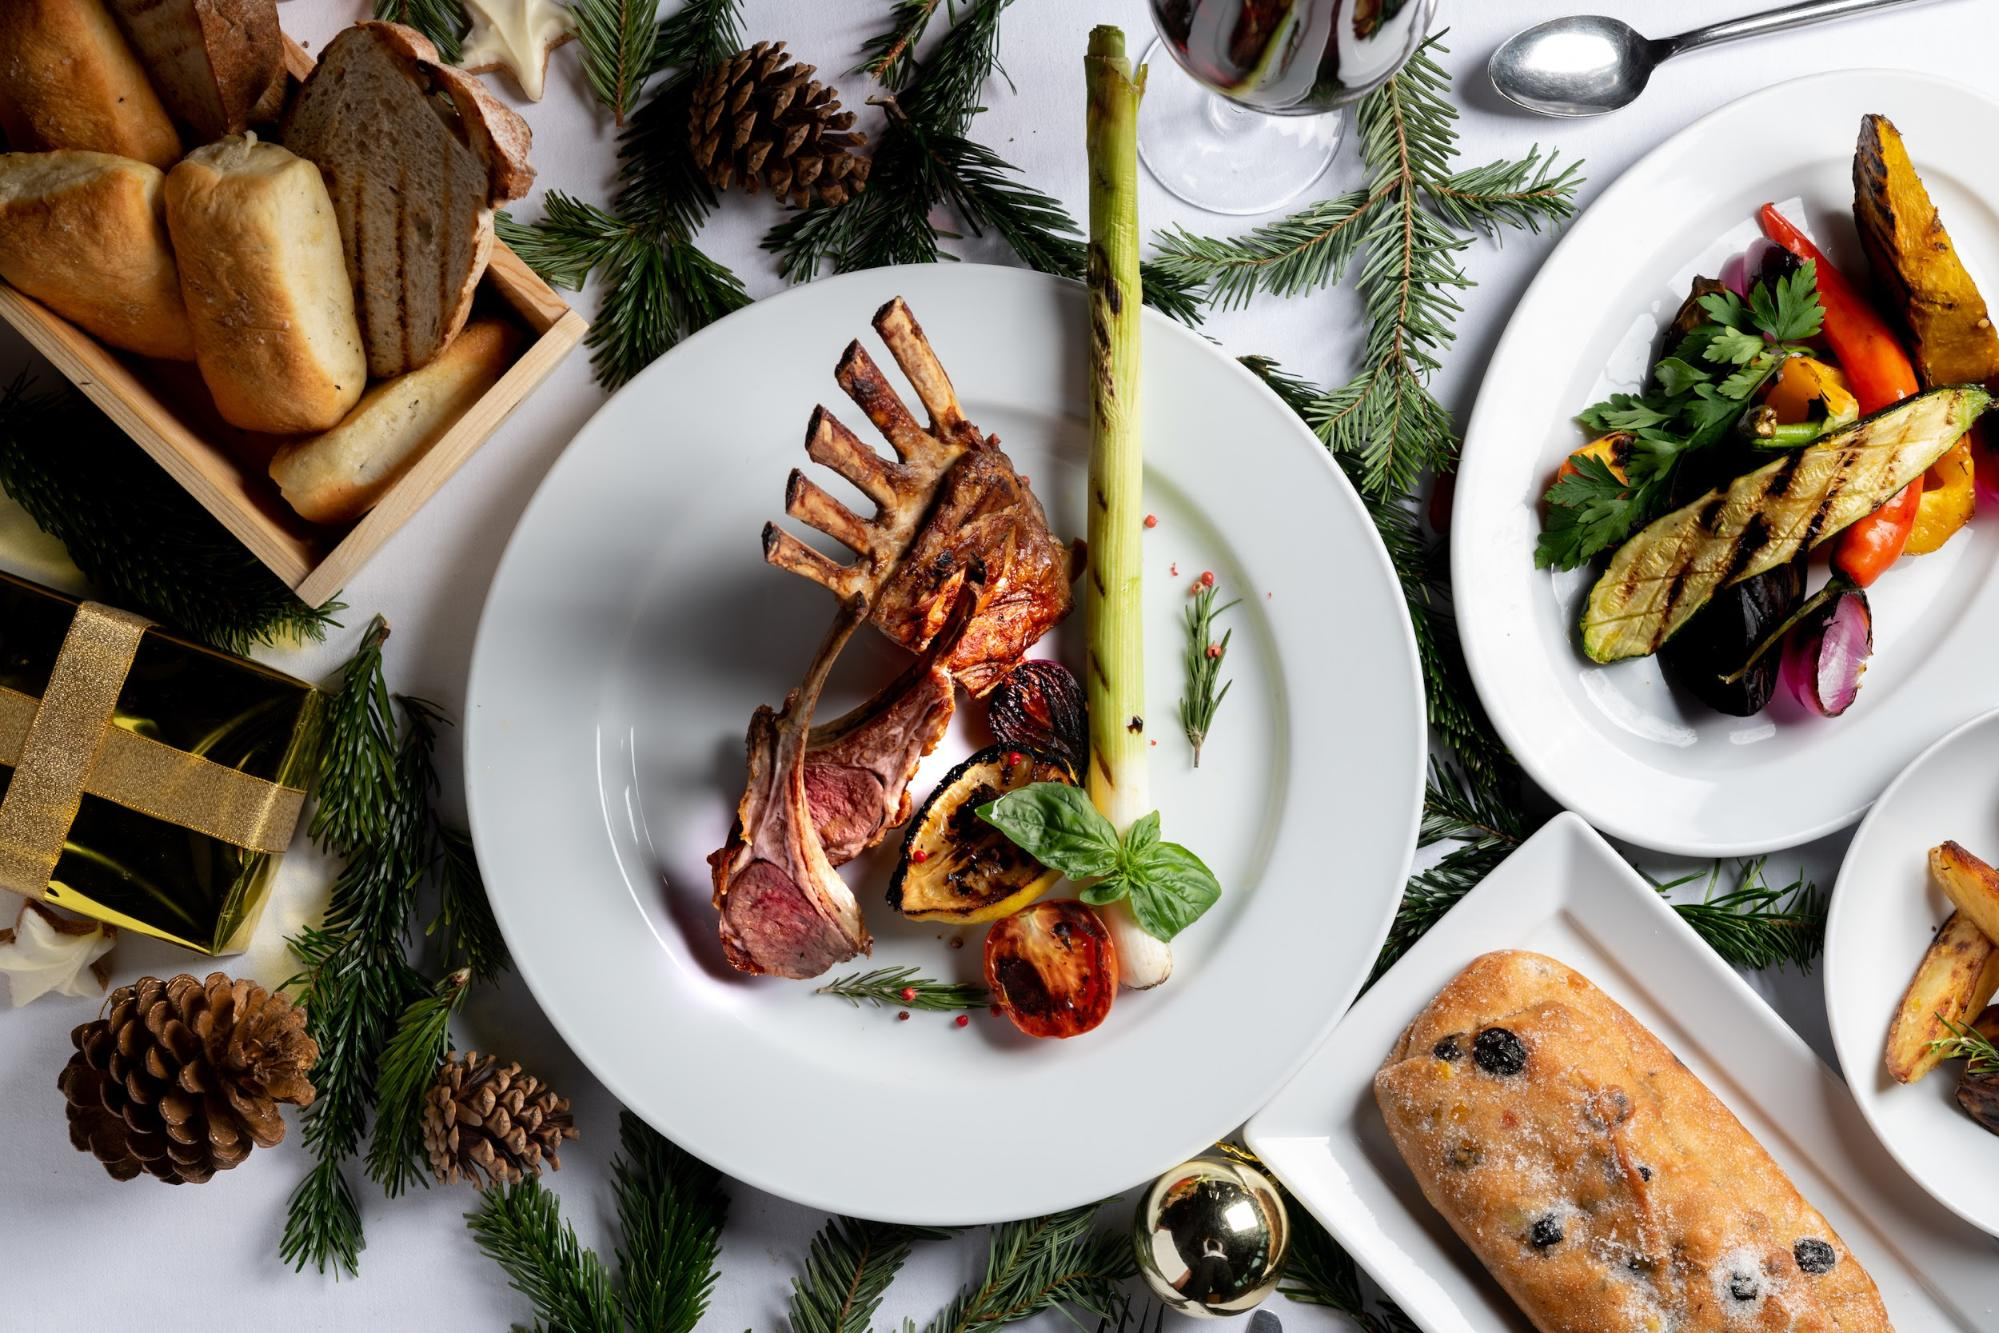 How To Guide: An Easy Lamb Christmas Dinner